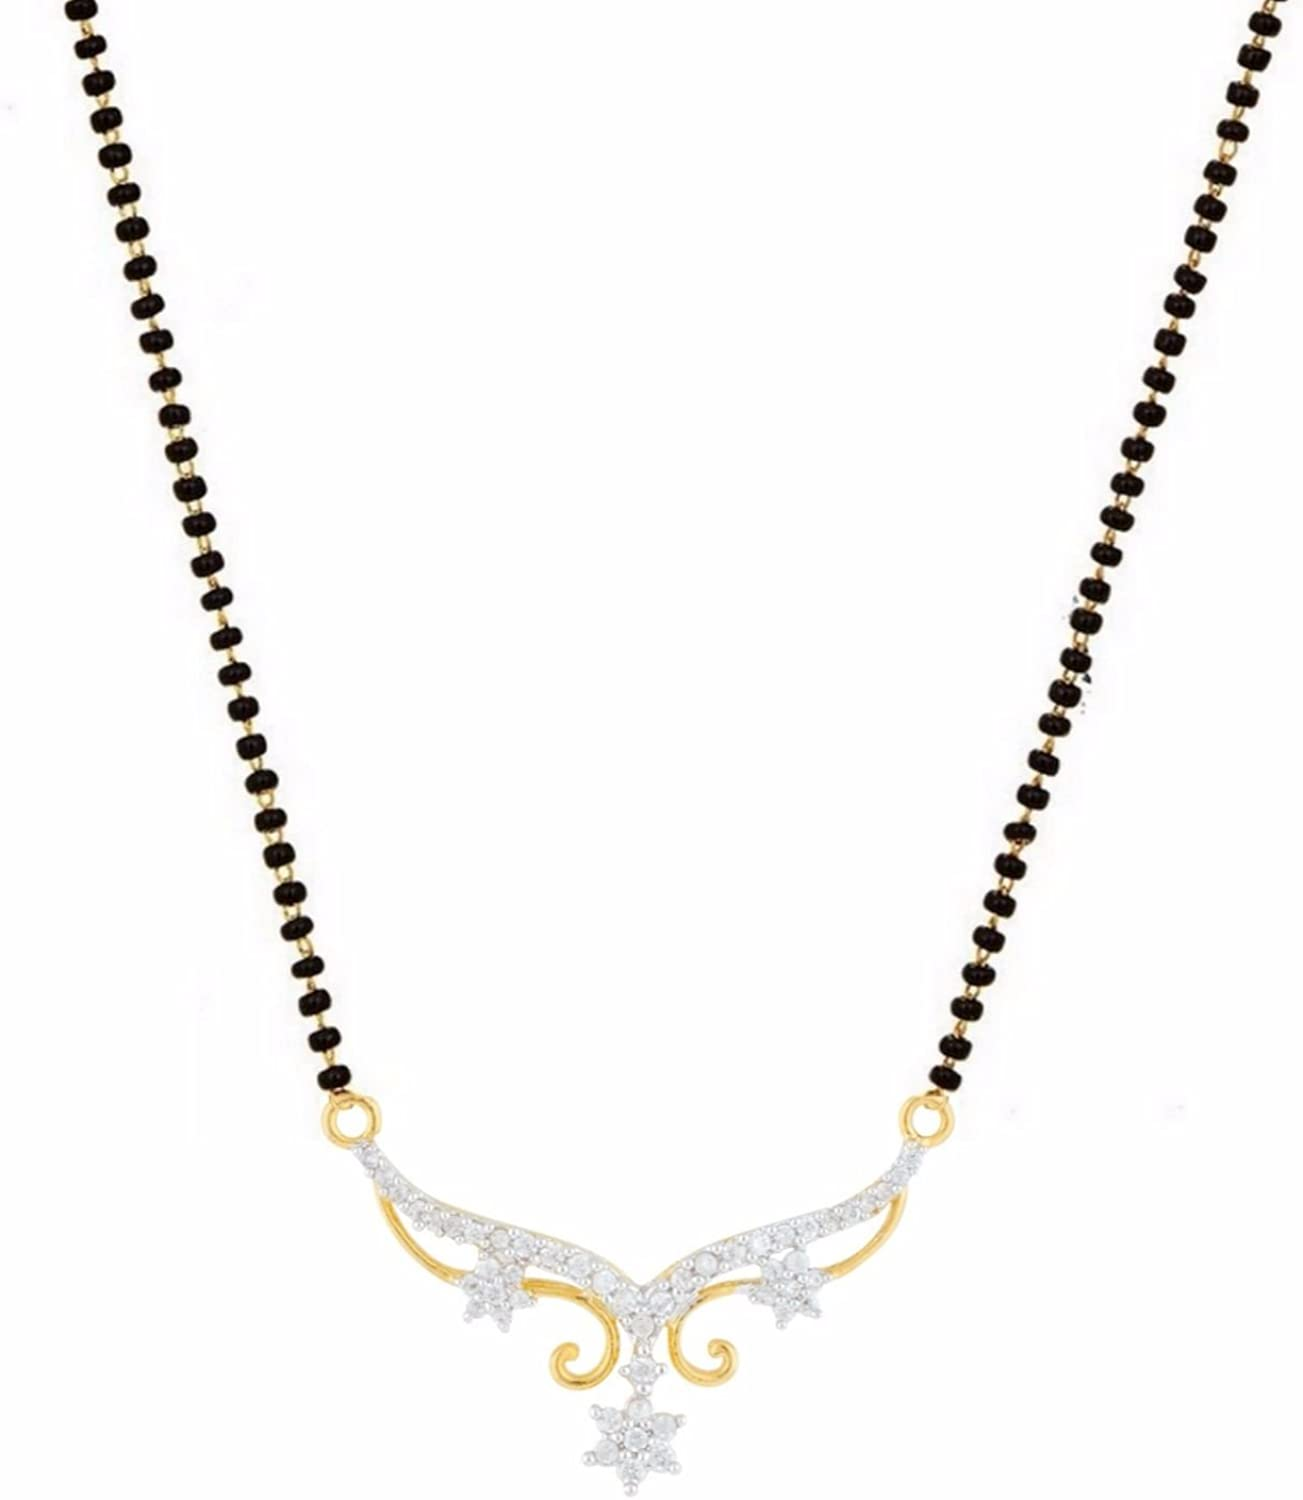 Efulgenz Indian Bollywood Traditional Gold Plated CZ Mangalsutra Pendant Necklace set jewelry for Women